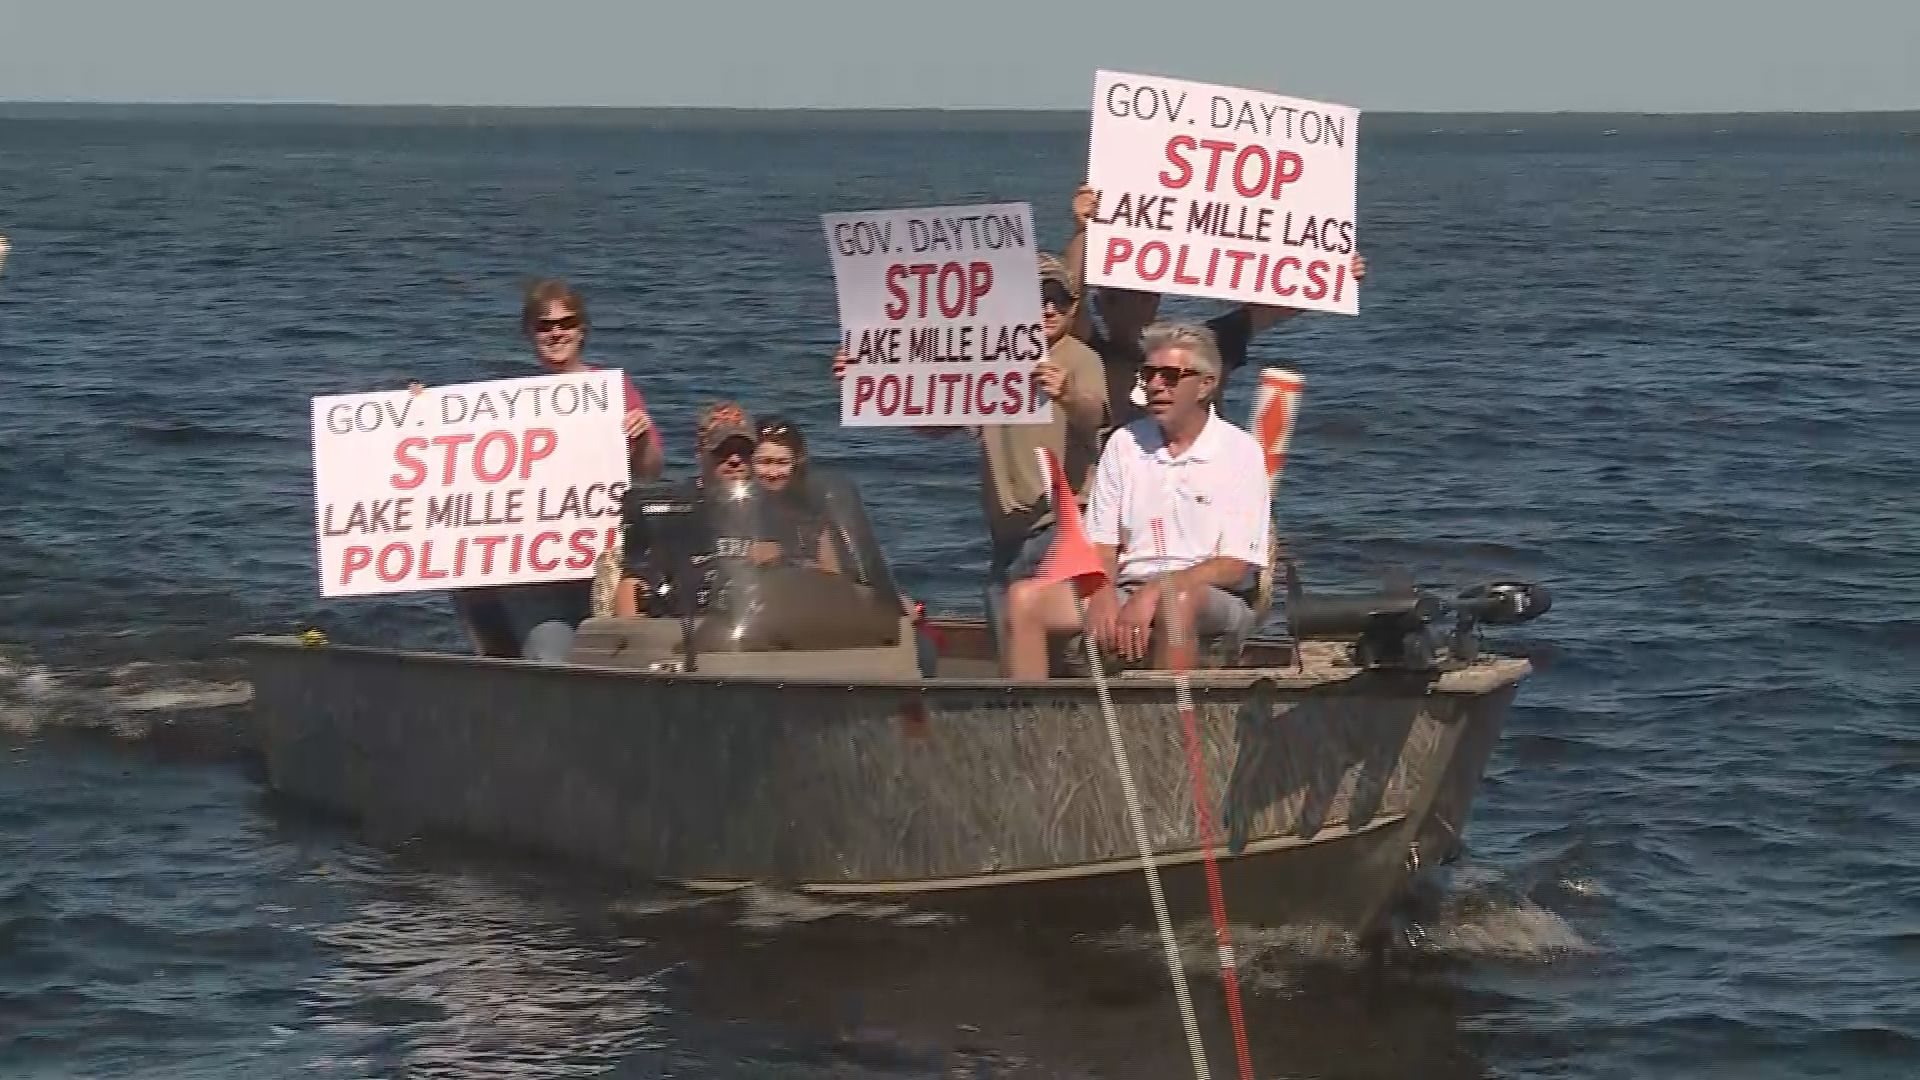 Protesters greet dayton when he fishes on for Mille lacs fishing